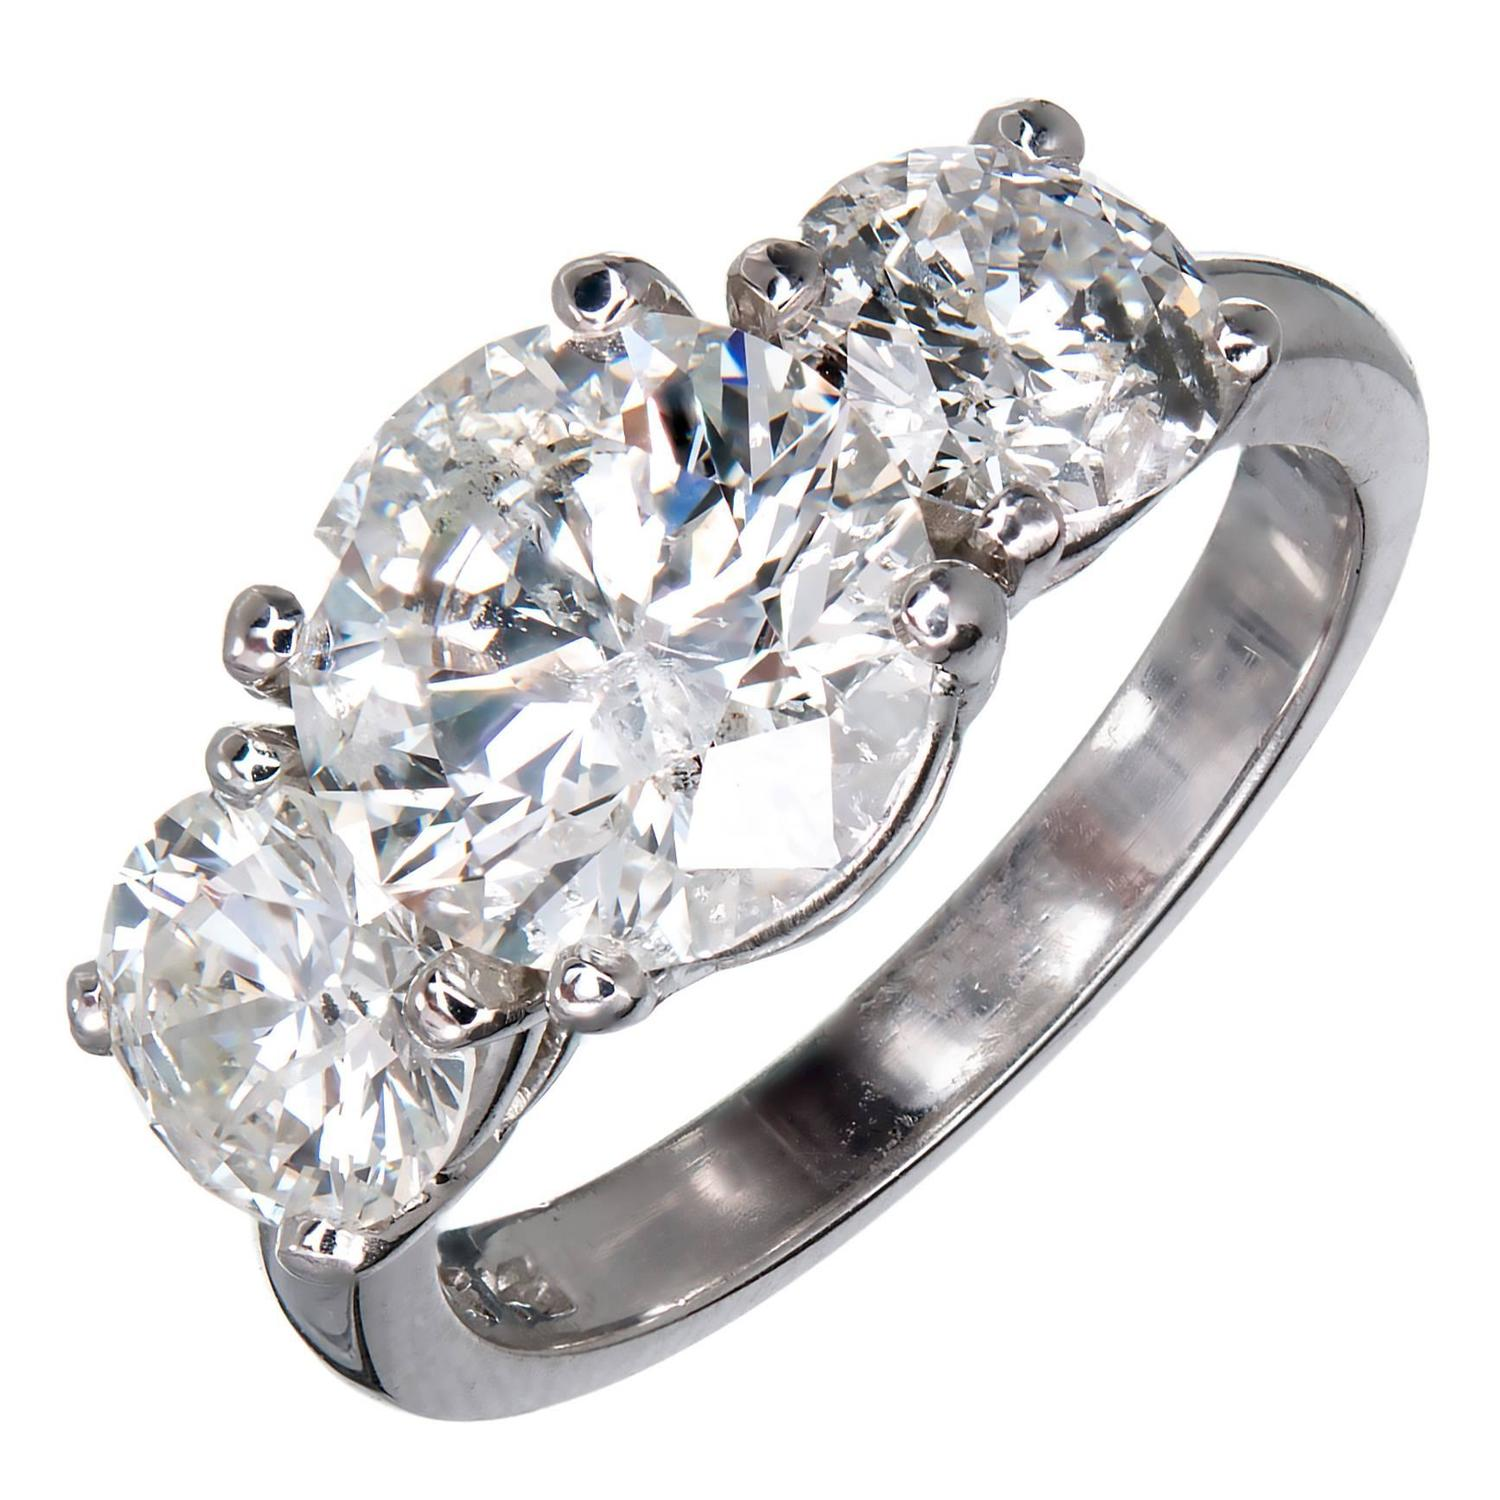 brilliant rings cut cz addiction low deco engagement ring wedding eve stunning profile s art